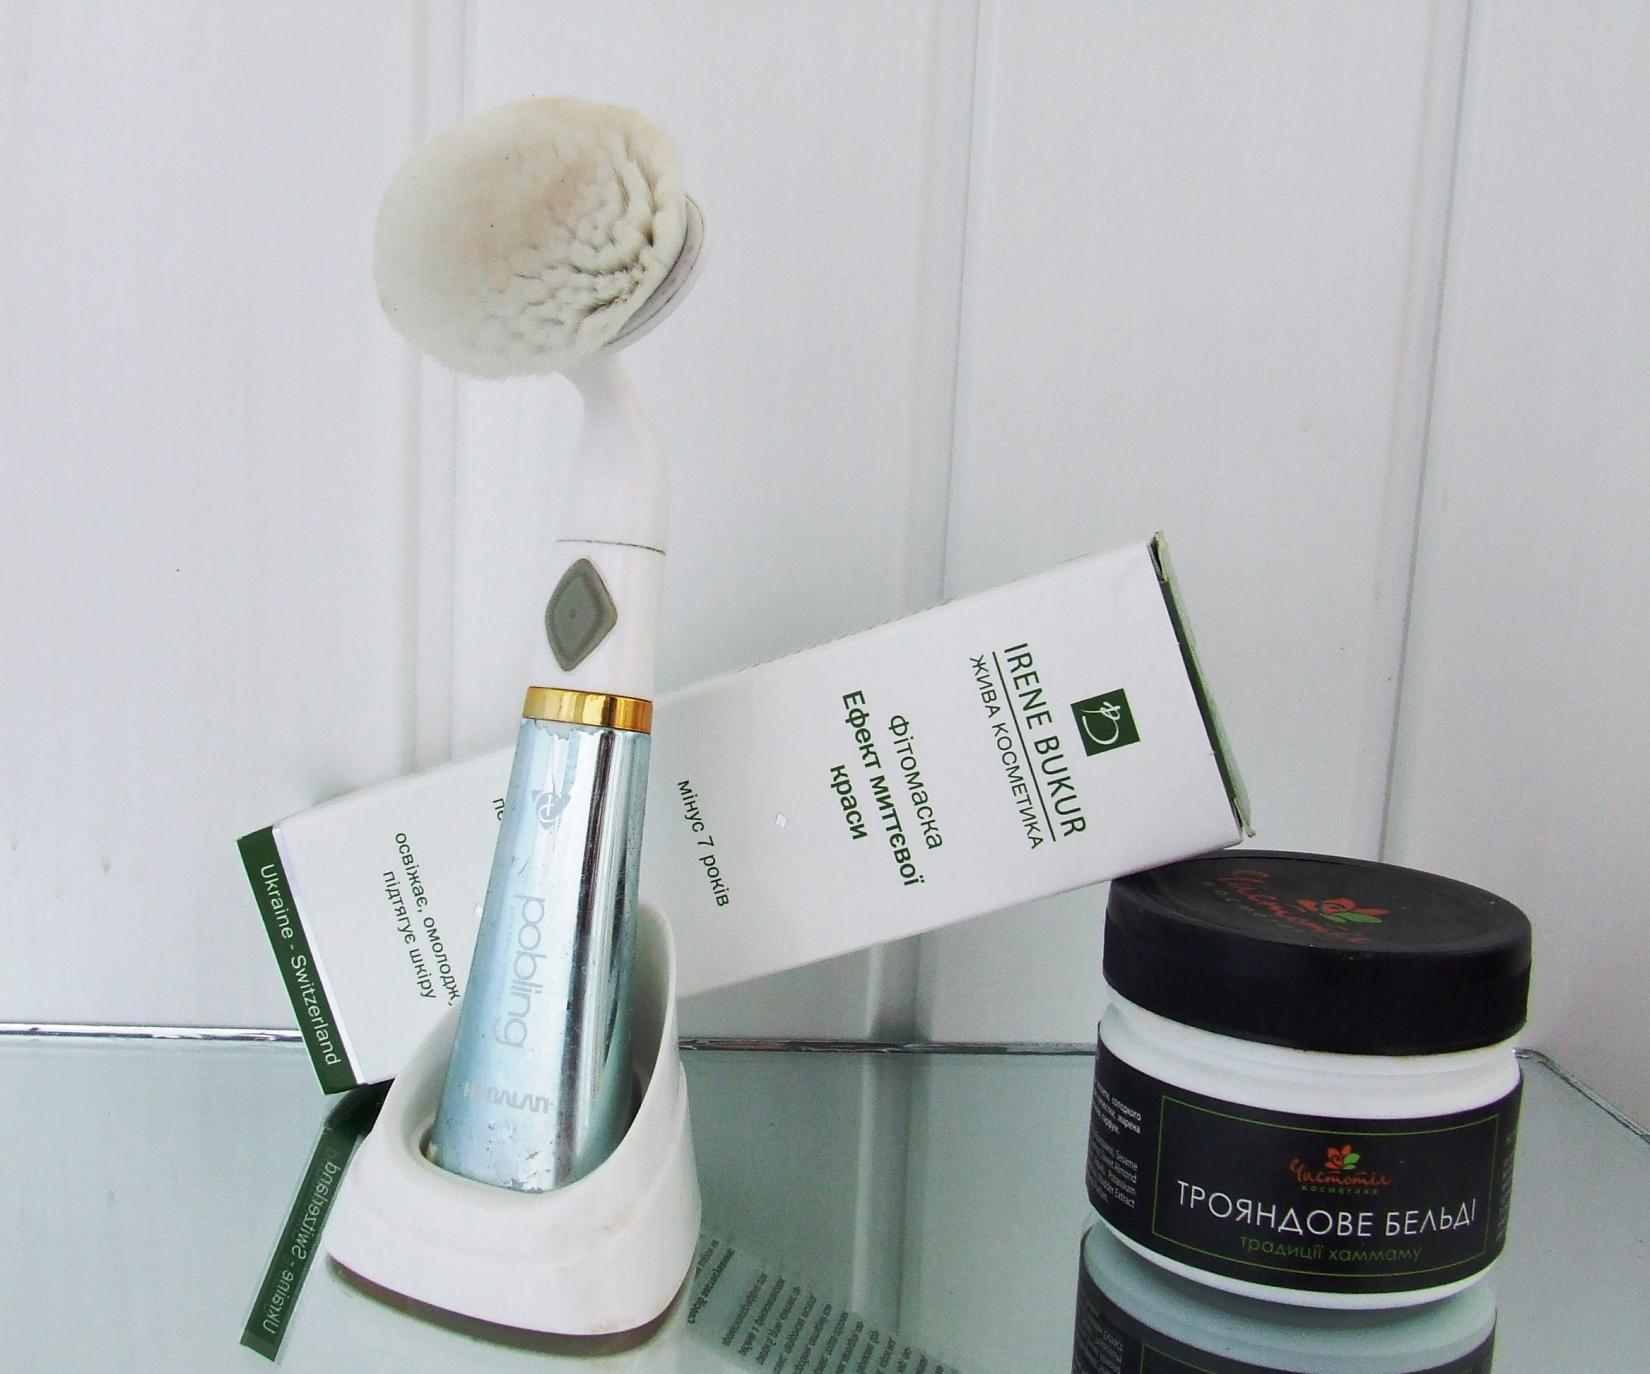 Pobling Sonic Pore Cleansing Brush